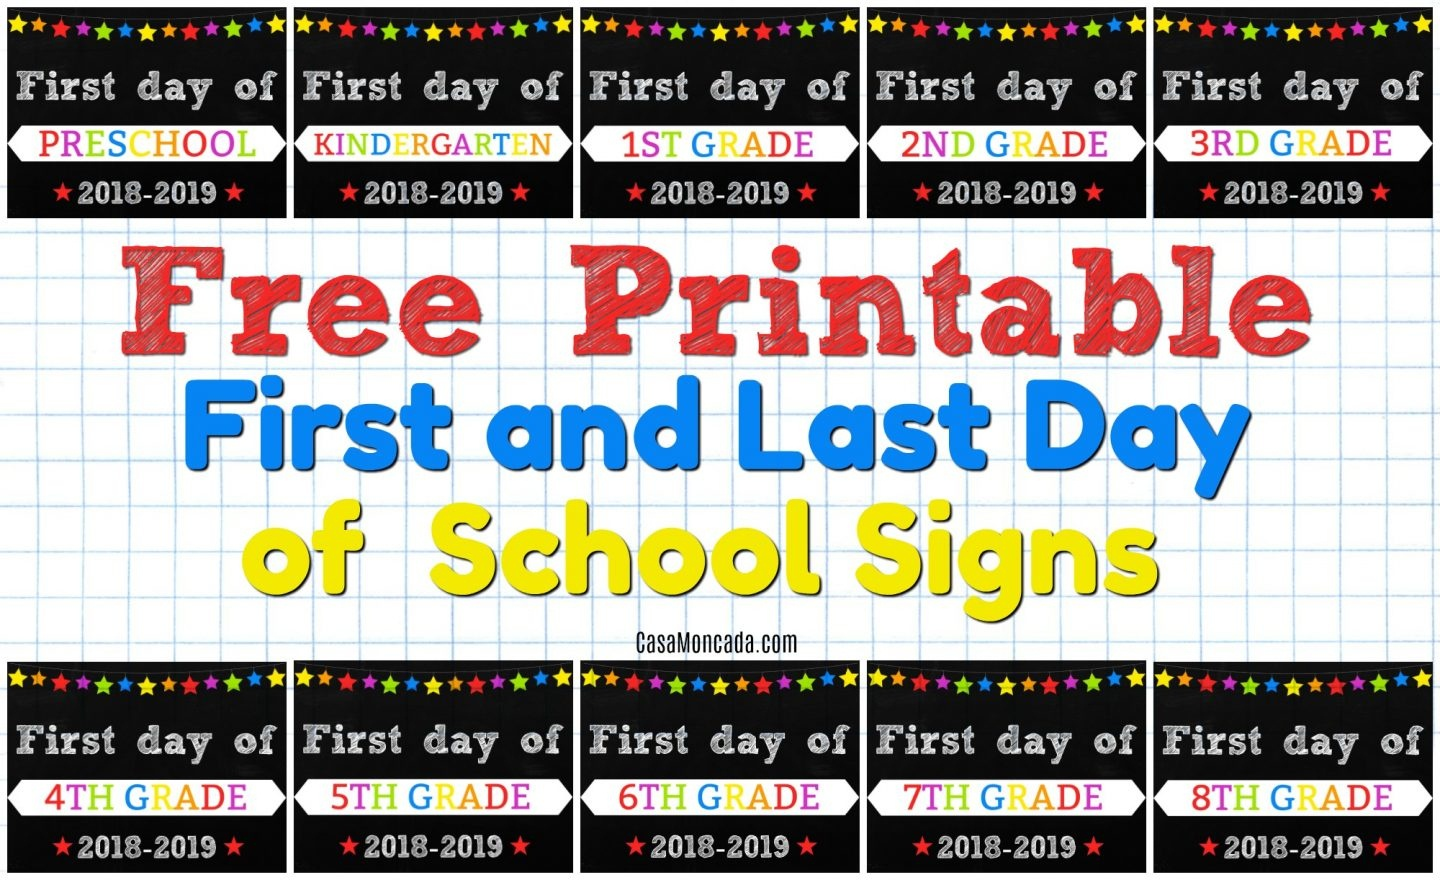 Free Printable First And Last Day Of School Signs - Casa Moncada - Free Last Day Of School Printables